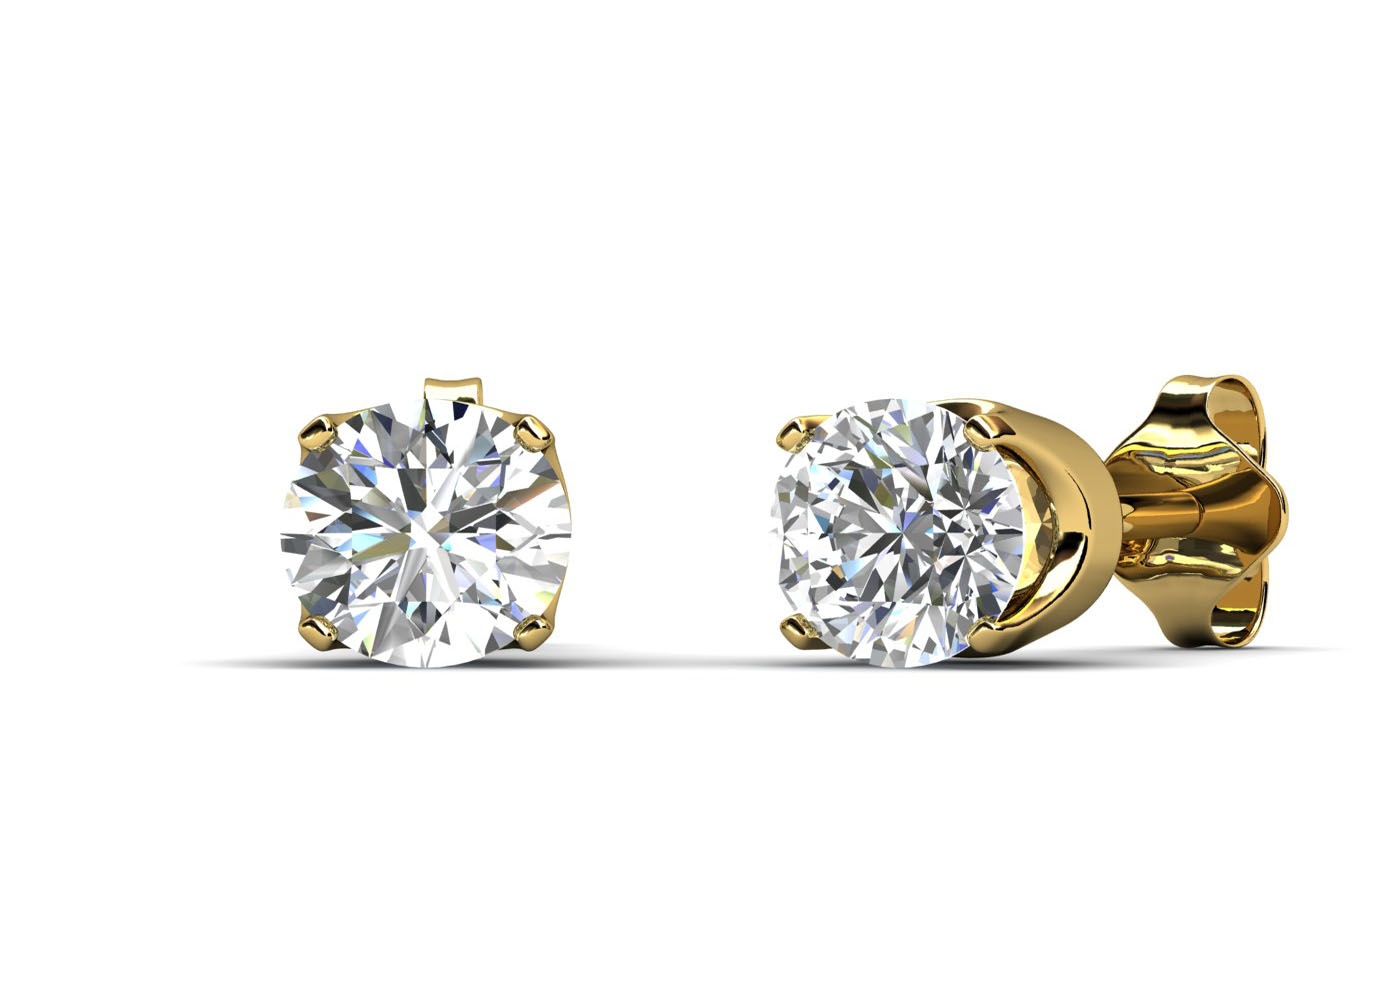 9ct Claw Set Diamond Earrings 0.15 Carats - Image 3 of 6